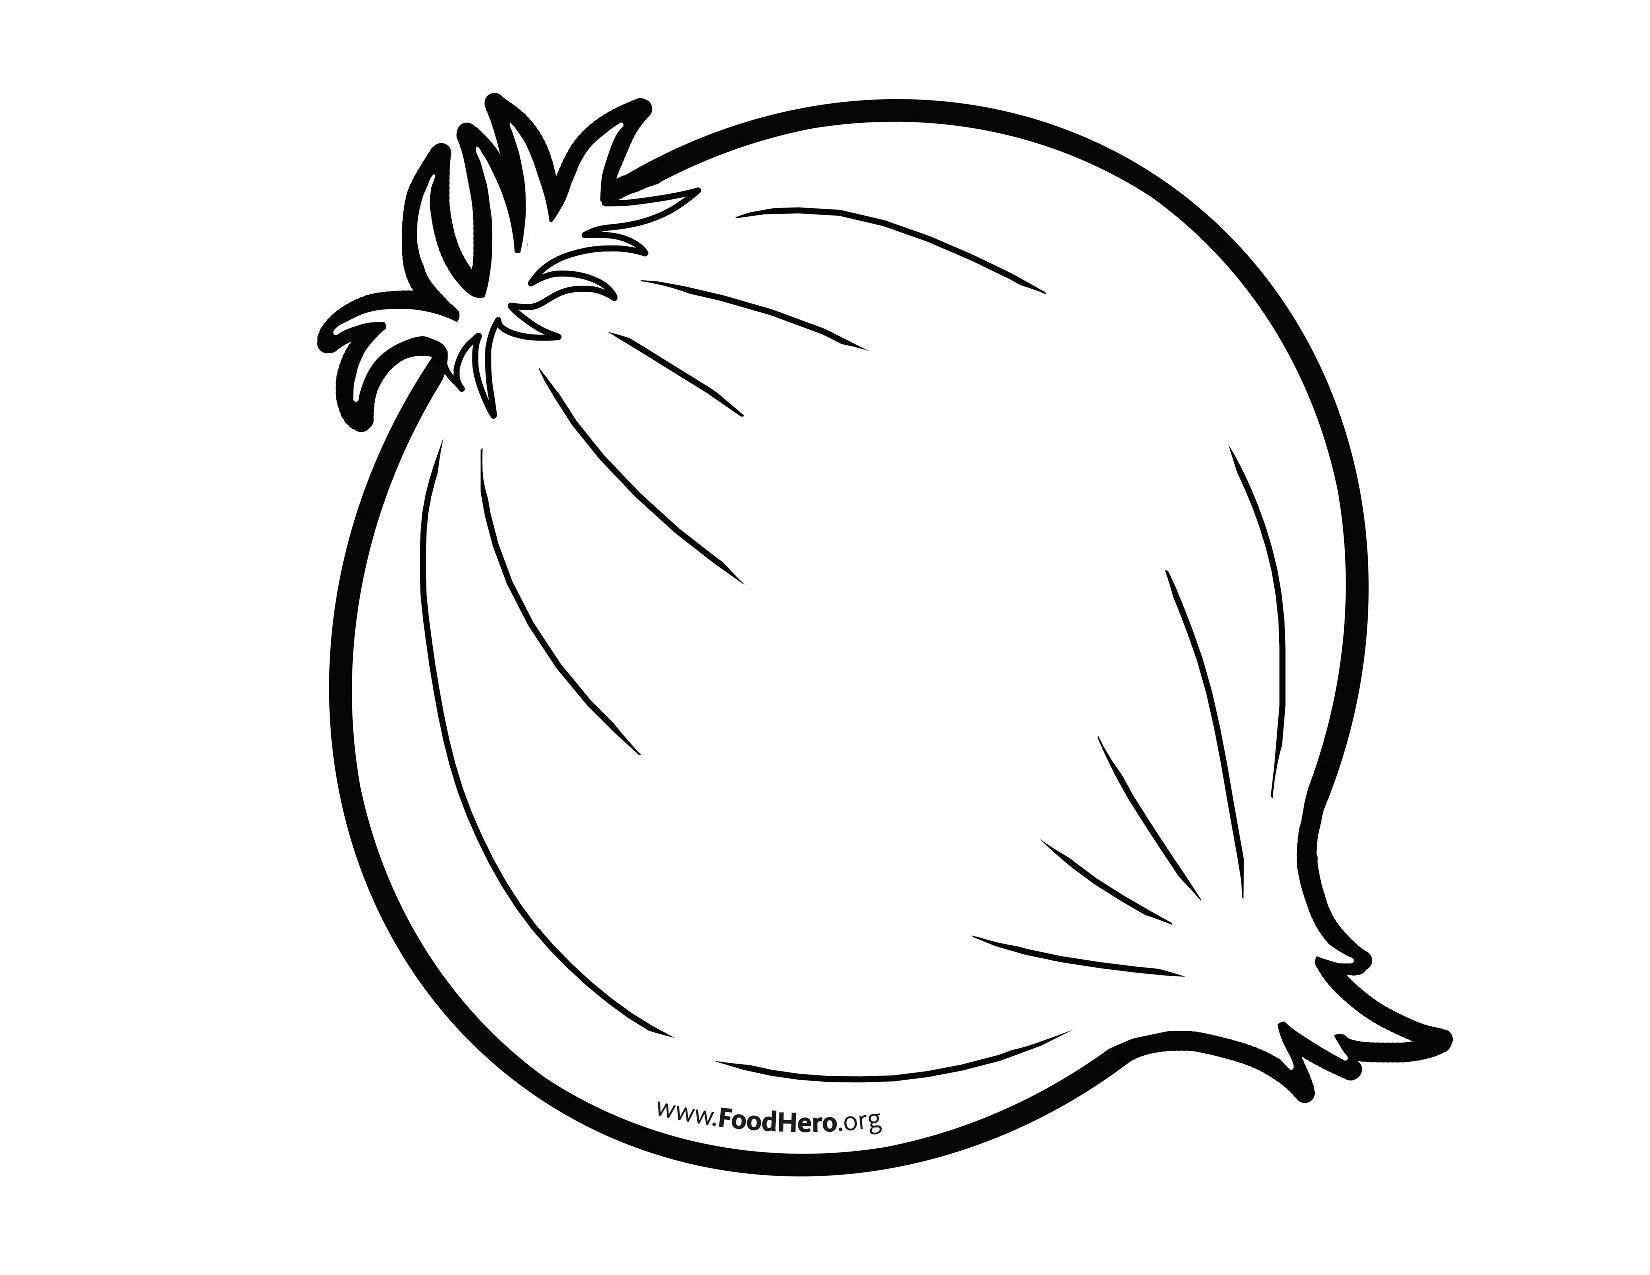 Onion Clipart Line Drawing Onion Line Drawing Transparent